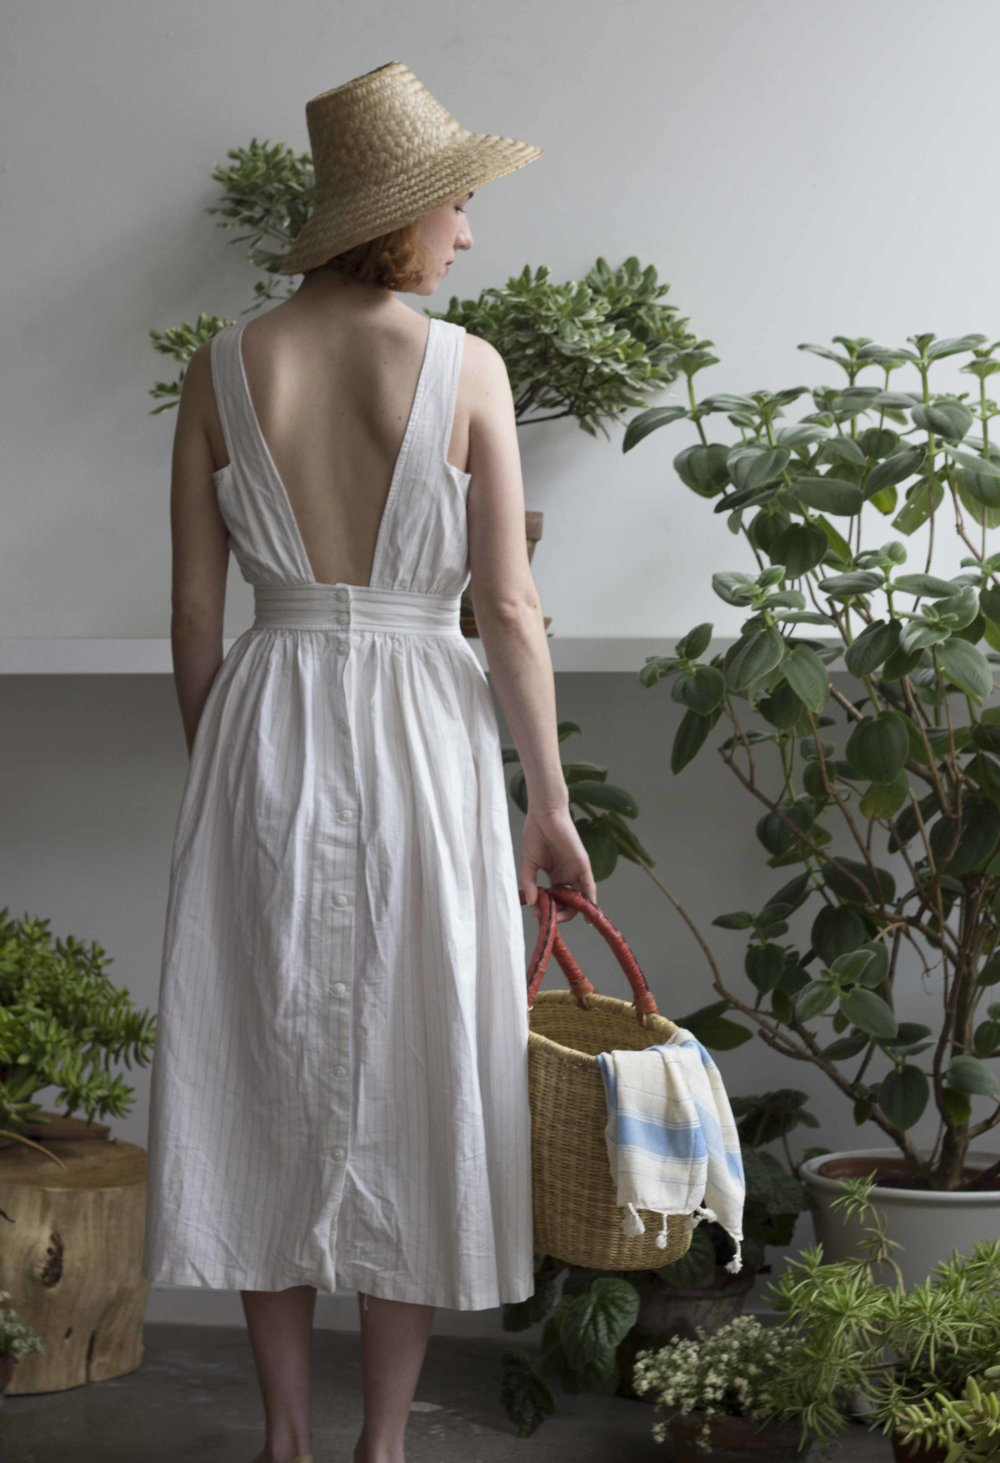 Love this amazing Backless dress from Wayward Collection! Basket and Linen towel - Cuttalossa.